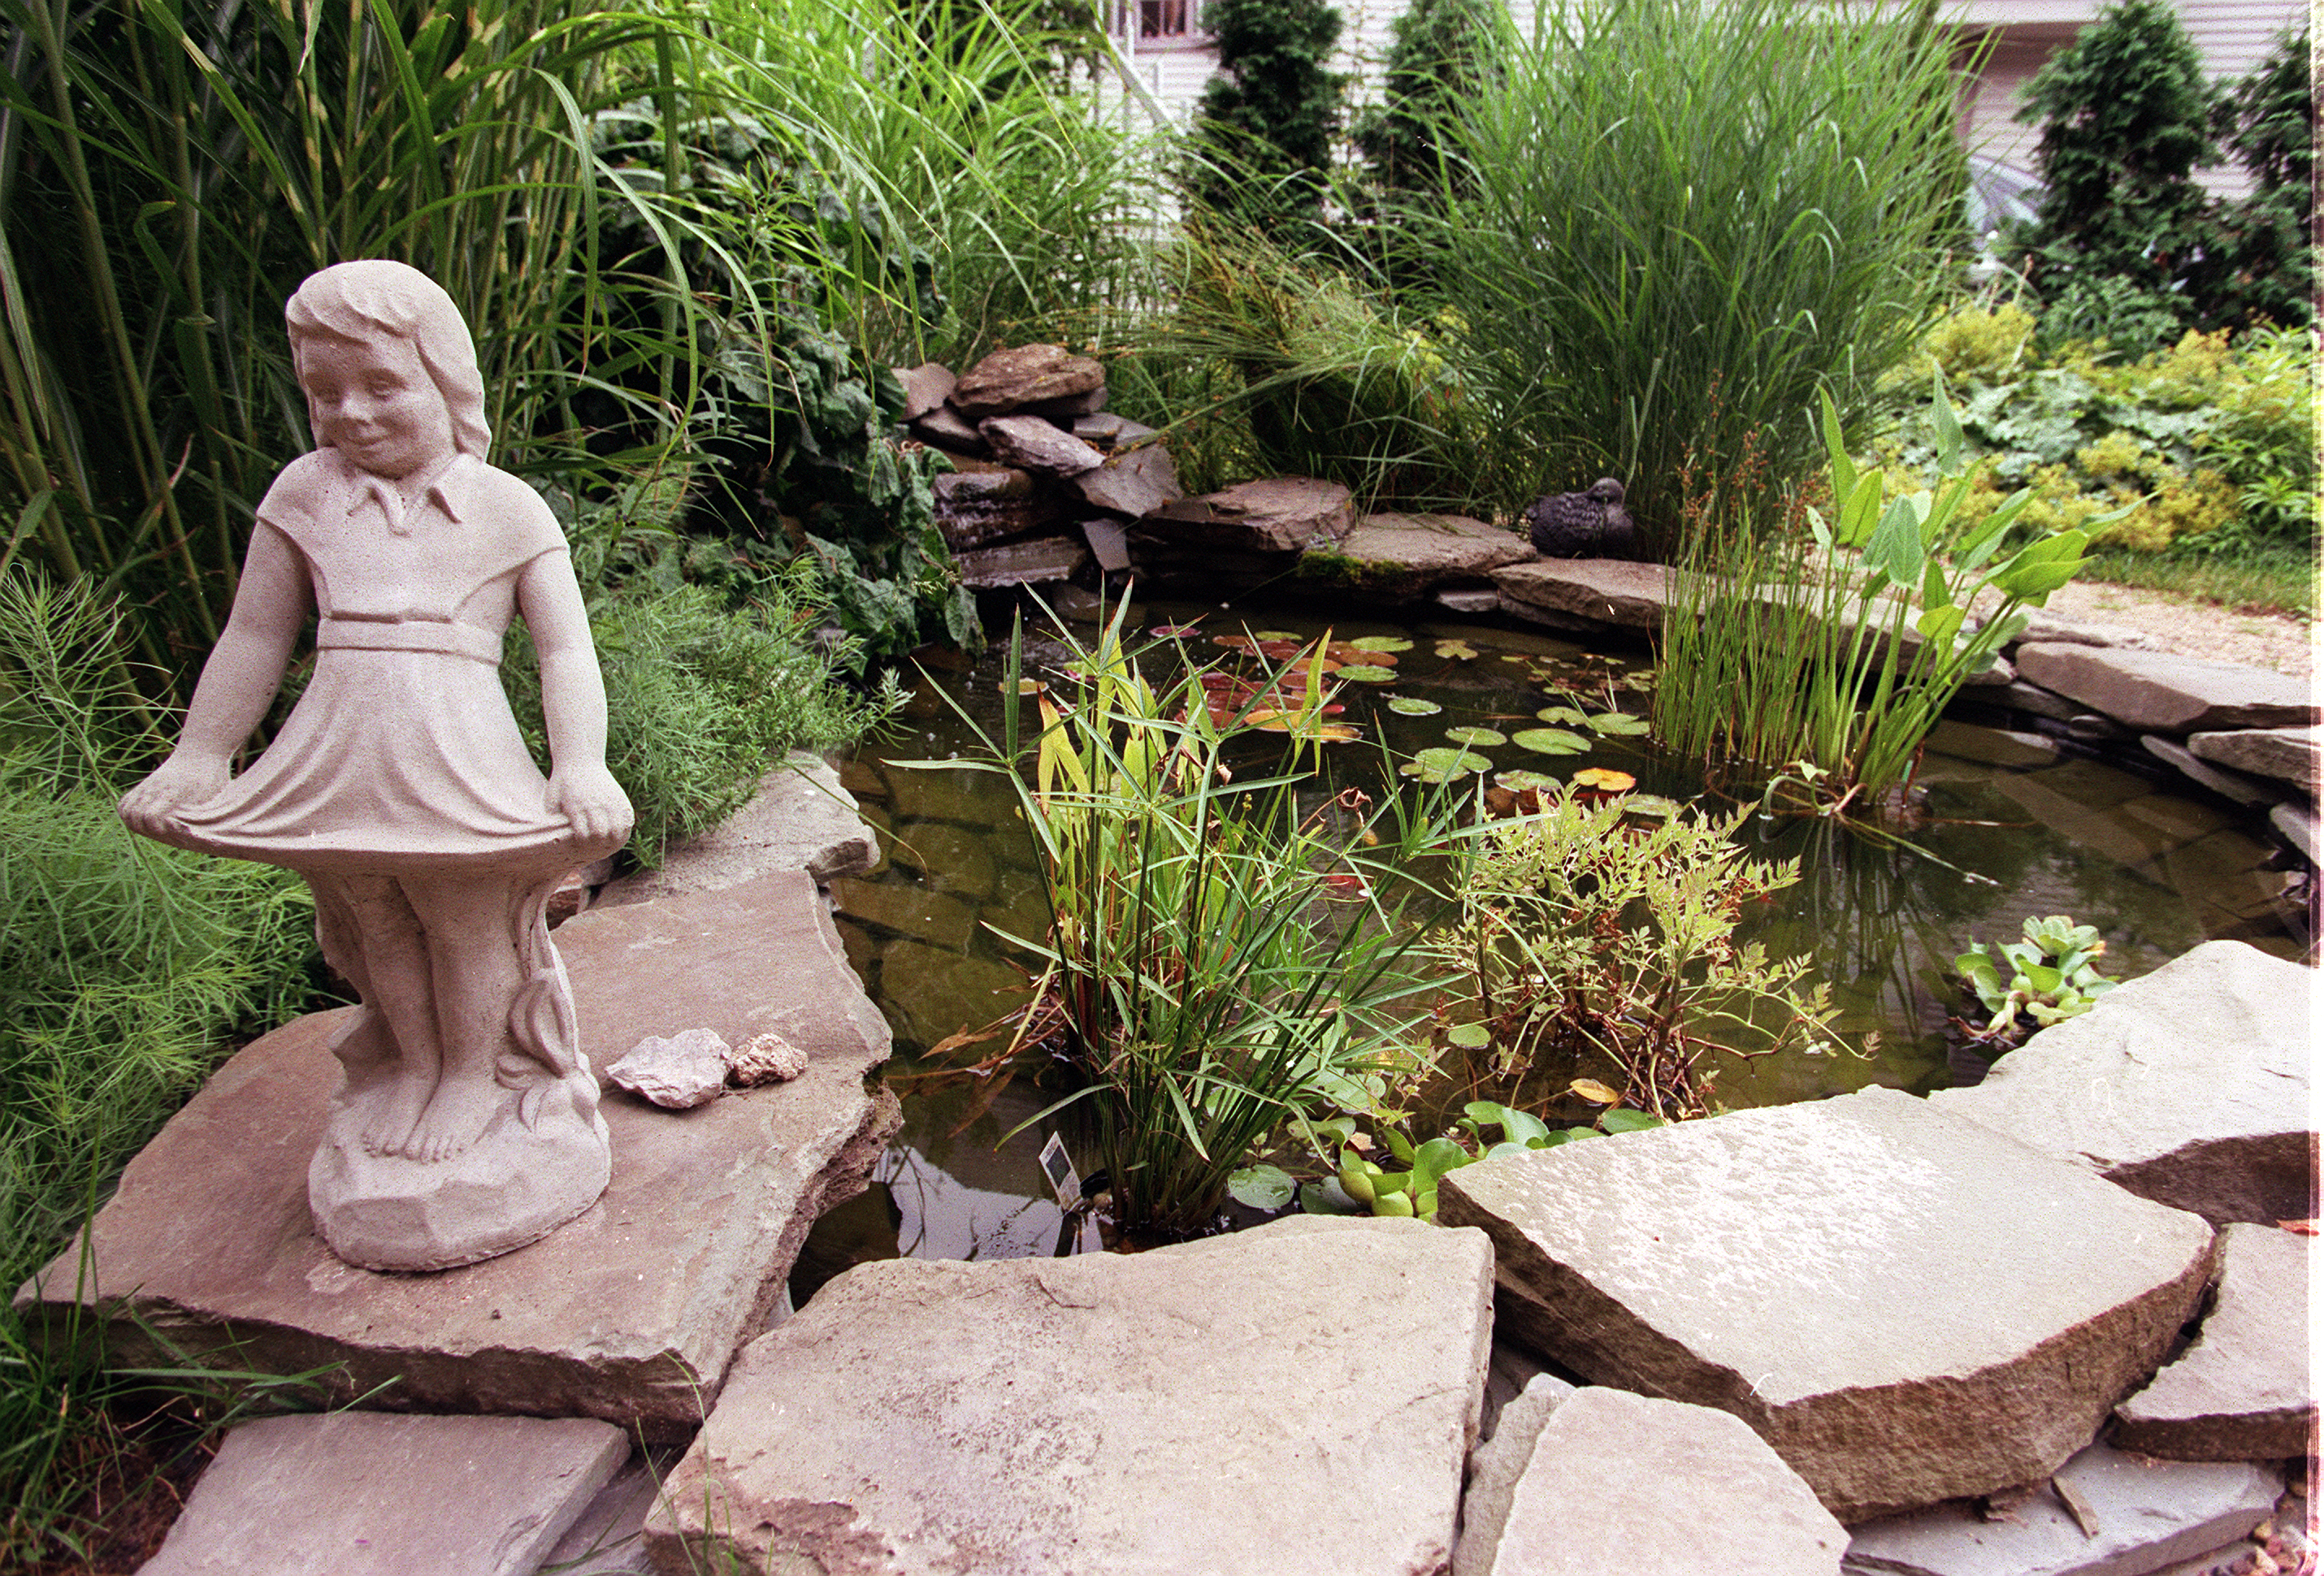 Members of the Garden Club of the Tonawandas will  learn about water gardens and ponds at their April 20 meeting. (News file photo)